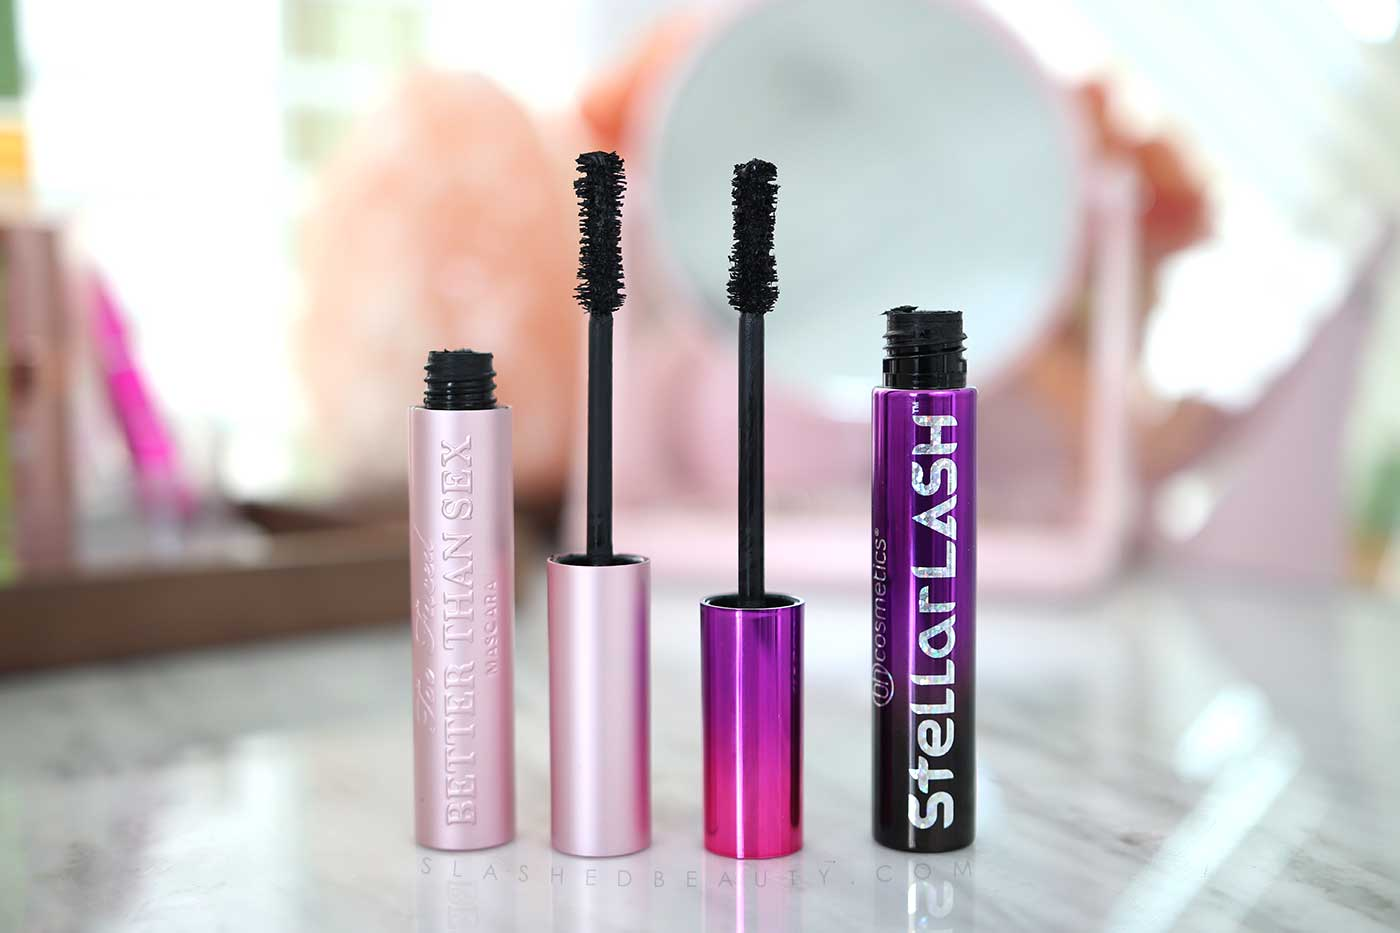 Two Drugstore Dupes for Too Faced Better Than Sex Mascara | BH Cosmetics Stellar Lash vs. Too Faced Better Than Sex Mascara | Slashed Beauty